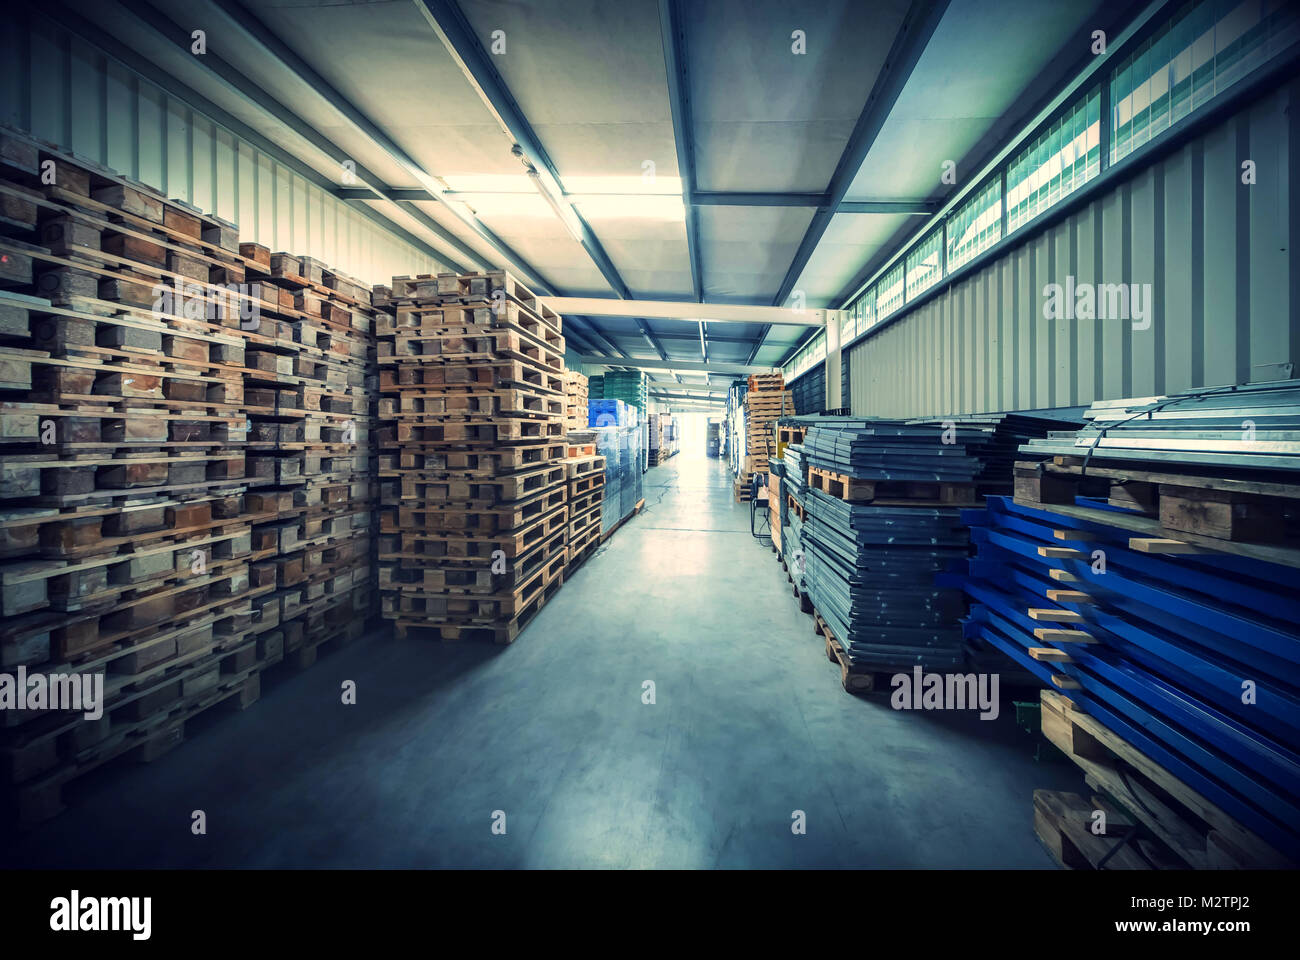 Warehouse Interior With Pallets   Stock Image